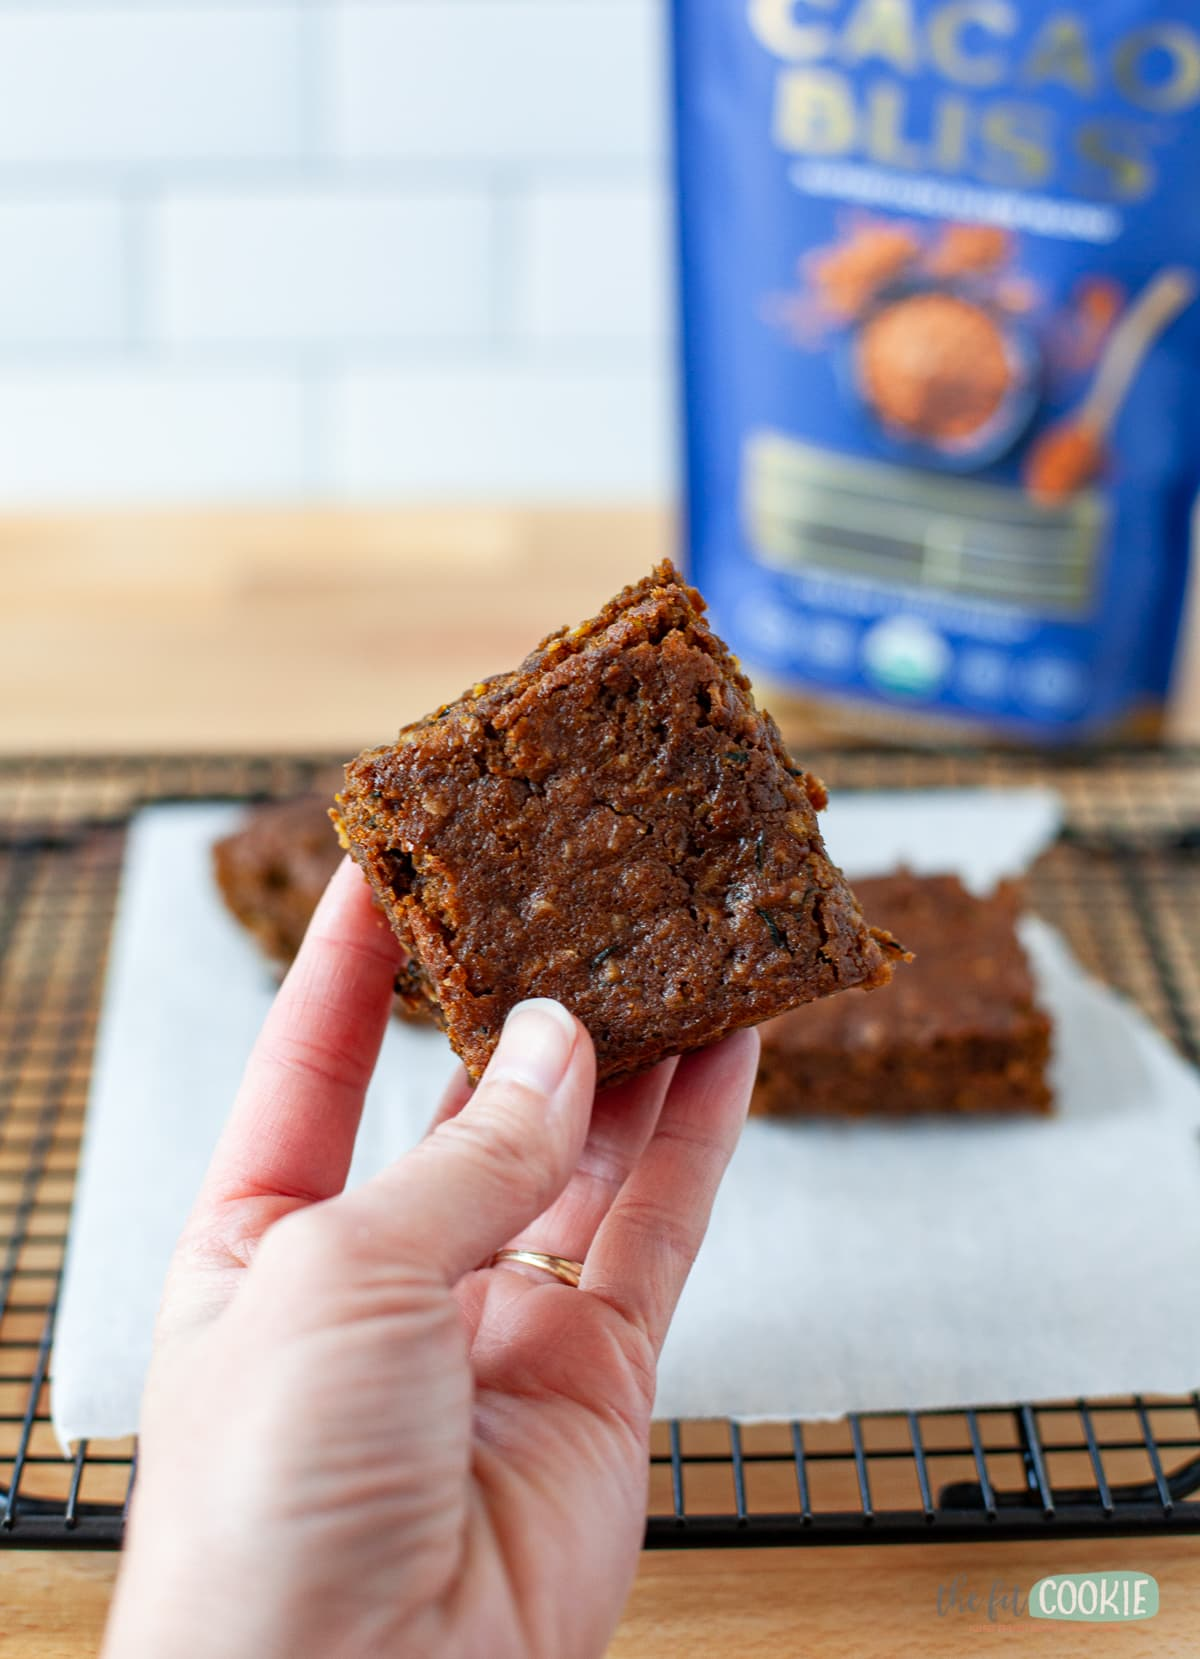 hand holding a chocolate zucchini bar in front of a cooling rack